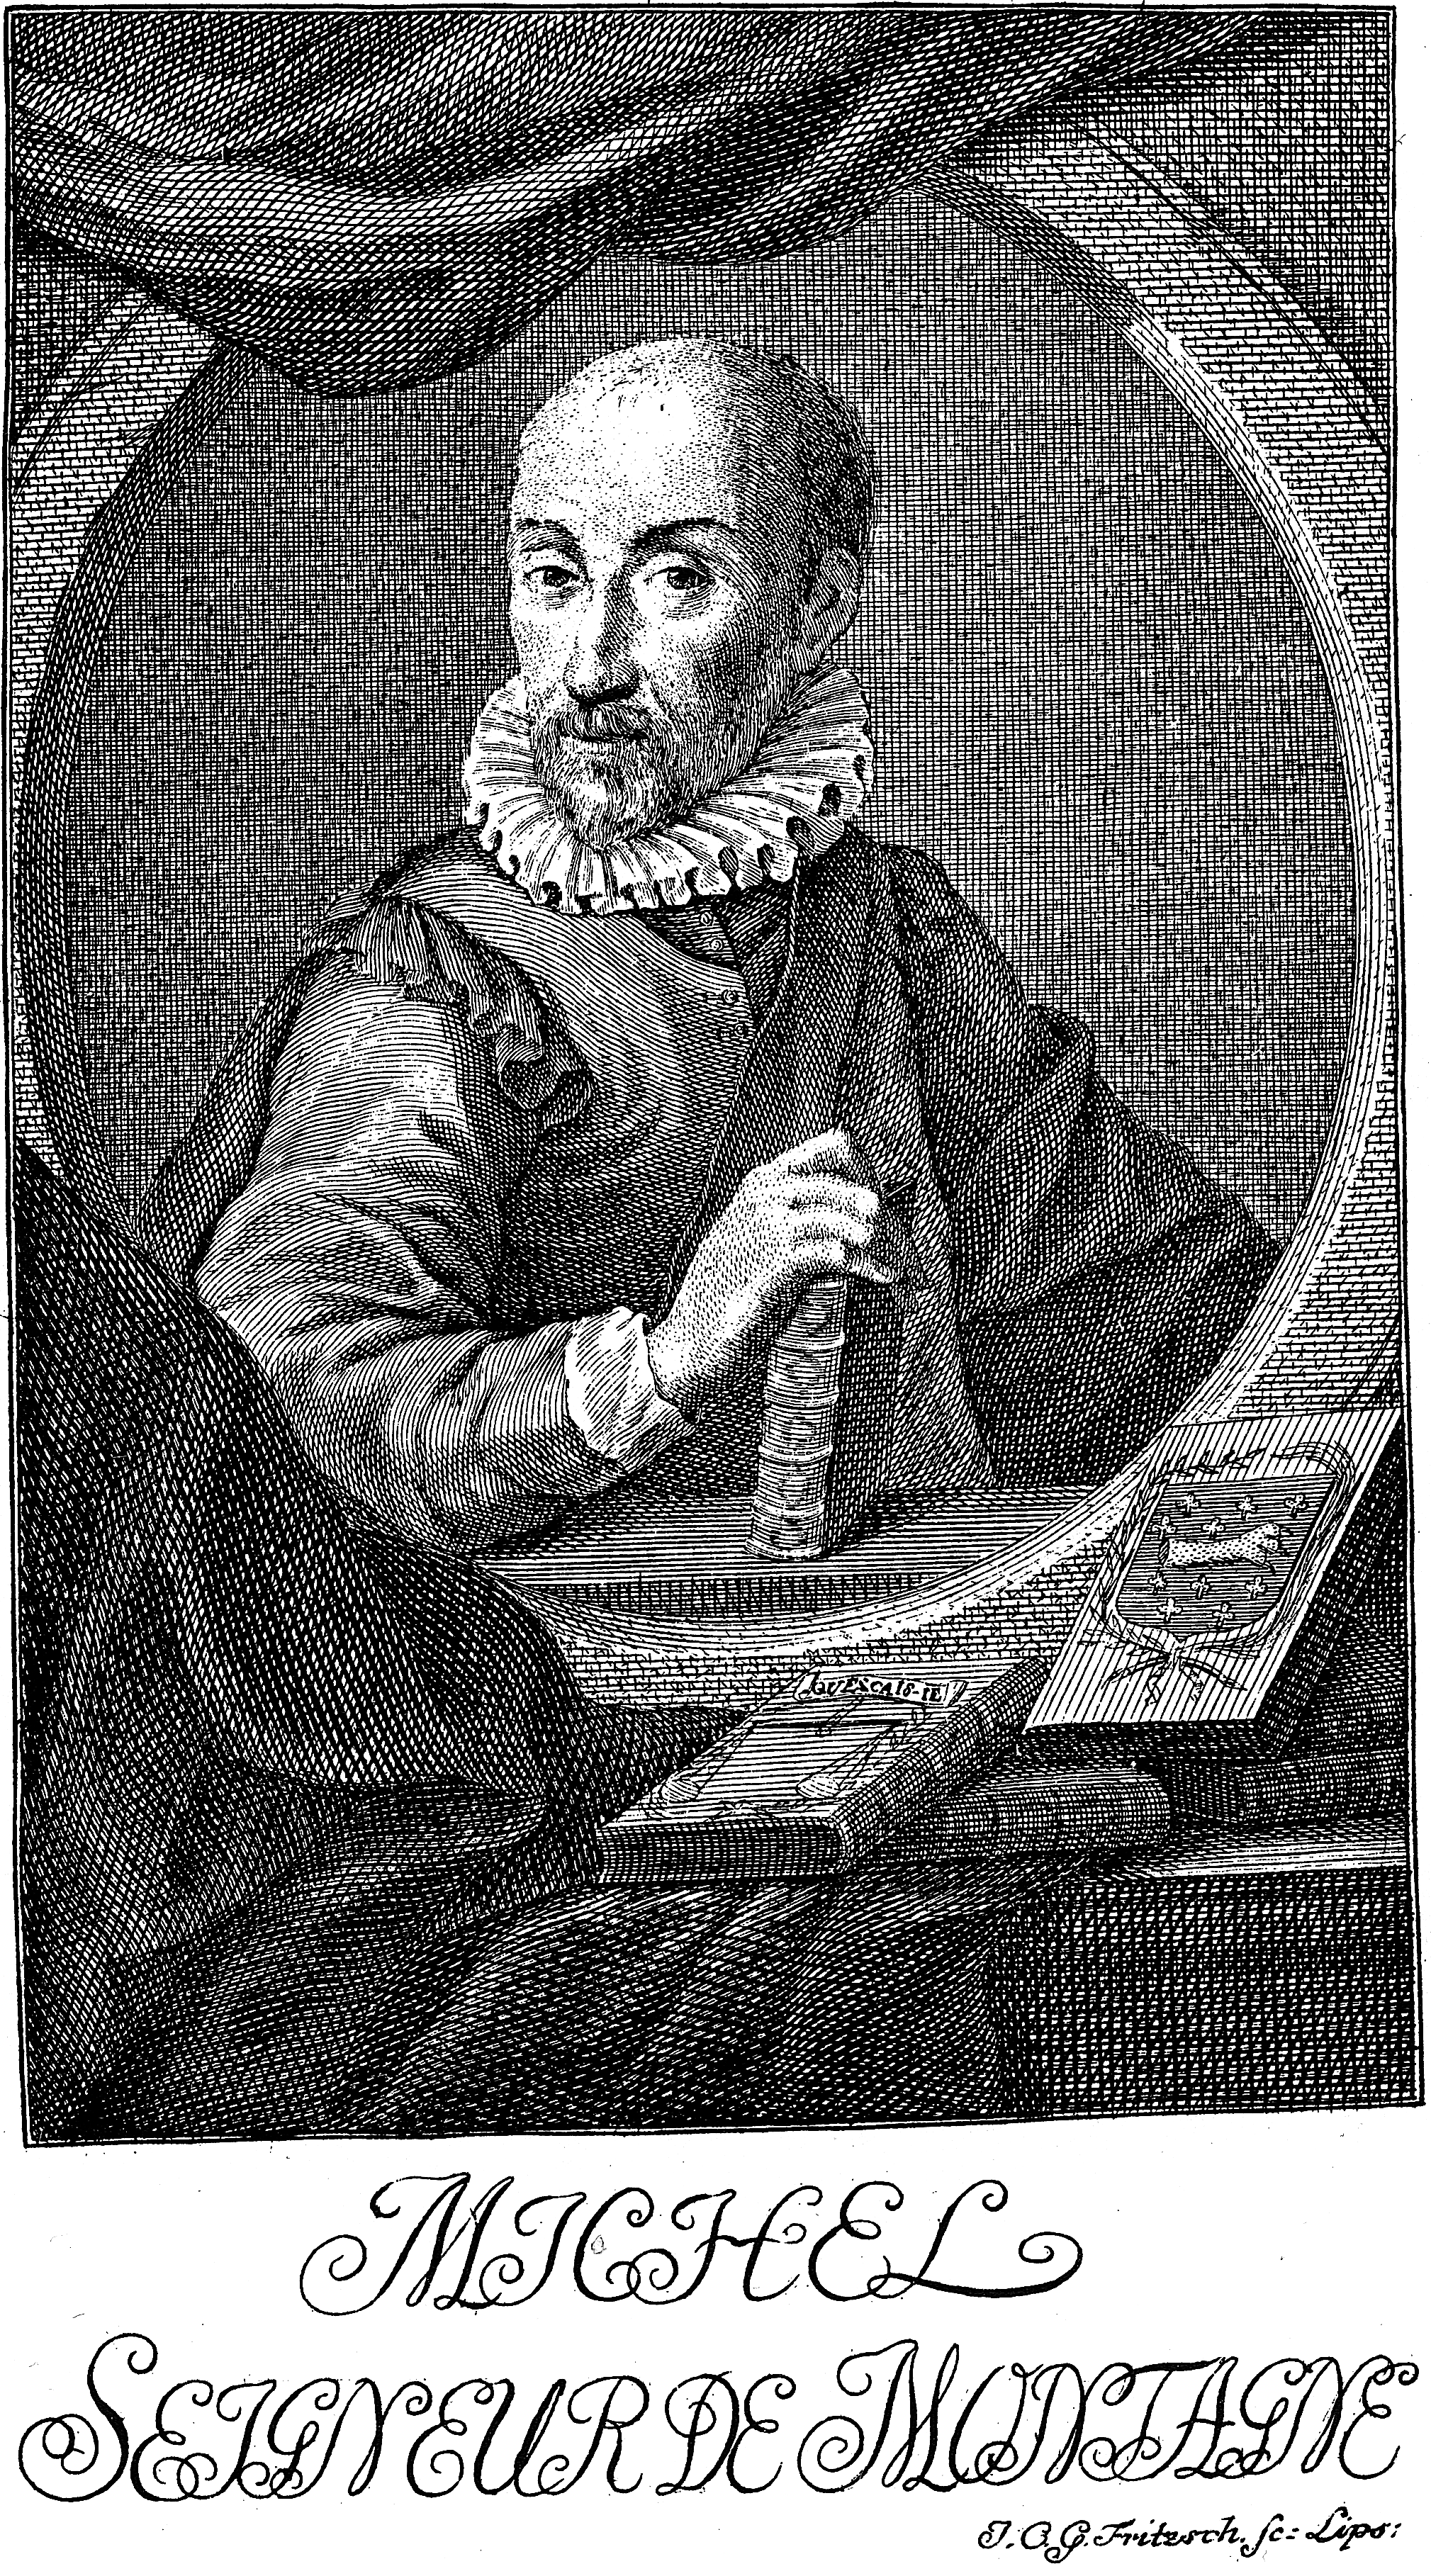 montaigne essays apology for raymond sebond Because of the character of the apology for raymond sebond, scholars have debated and are still debating the question of montaigne's real intent in publishing this essay.